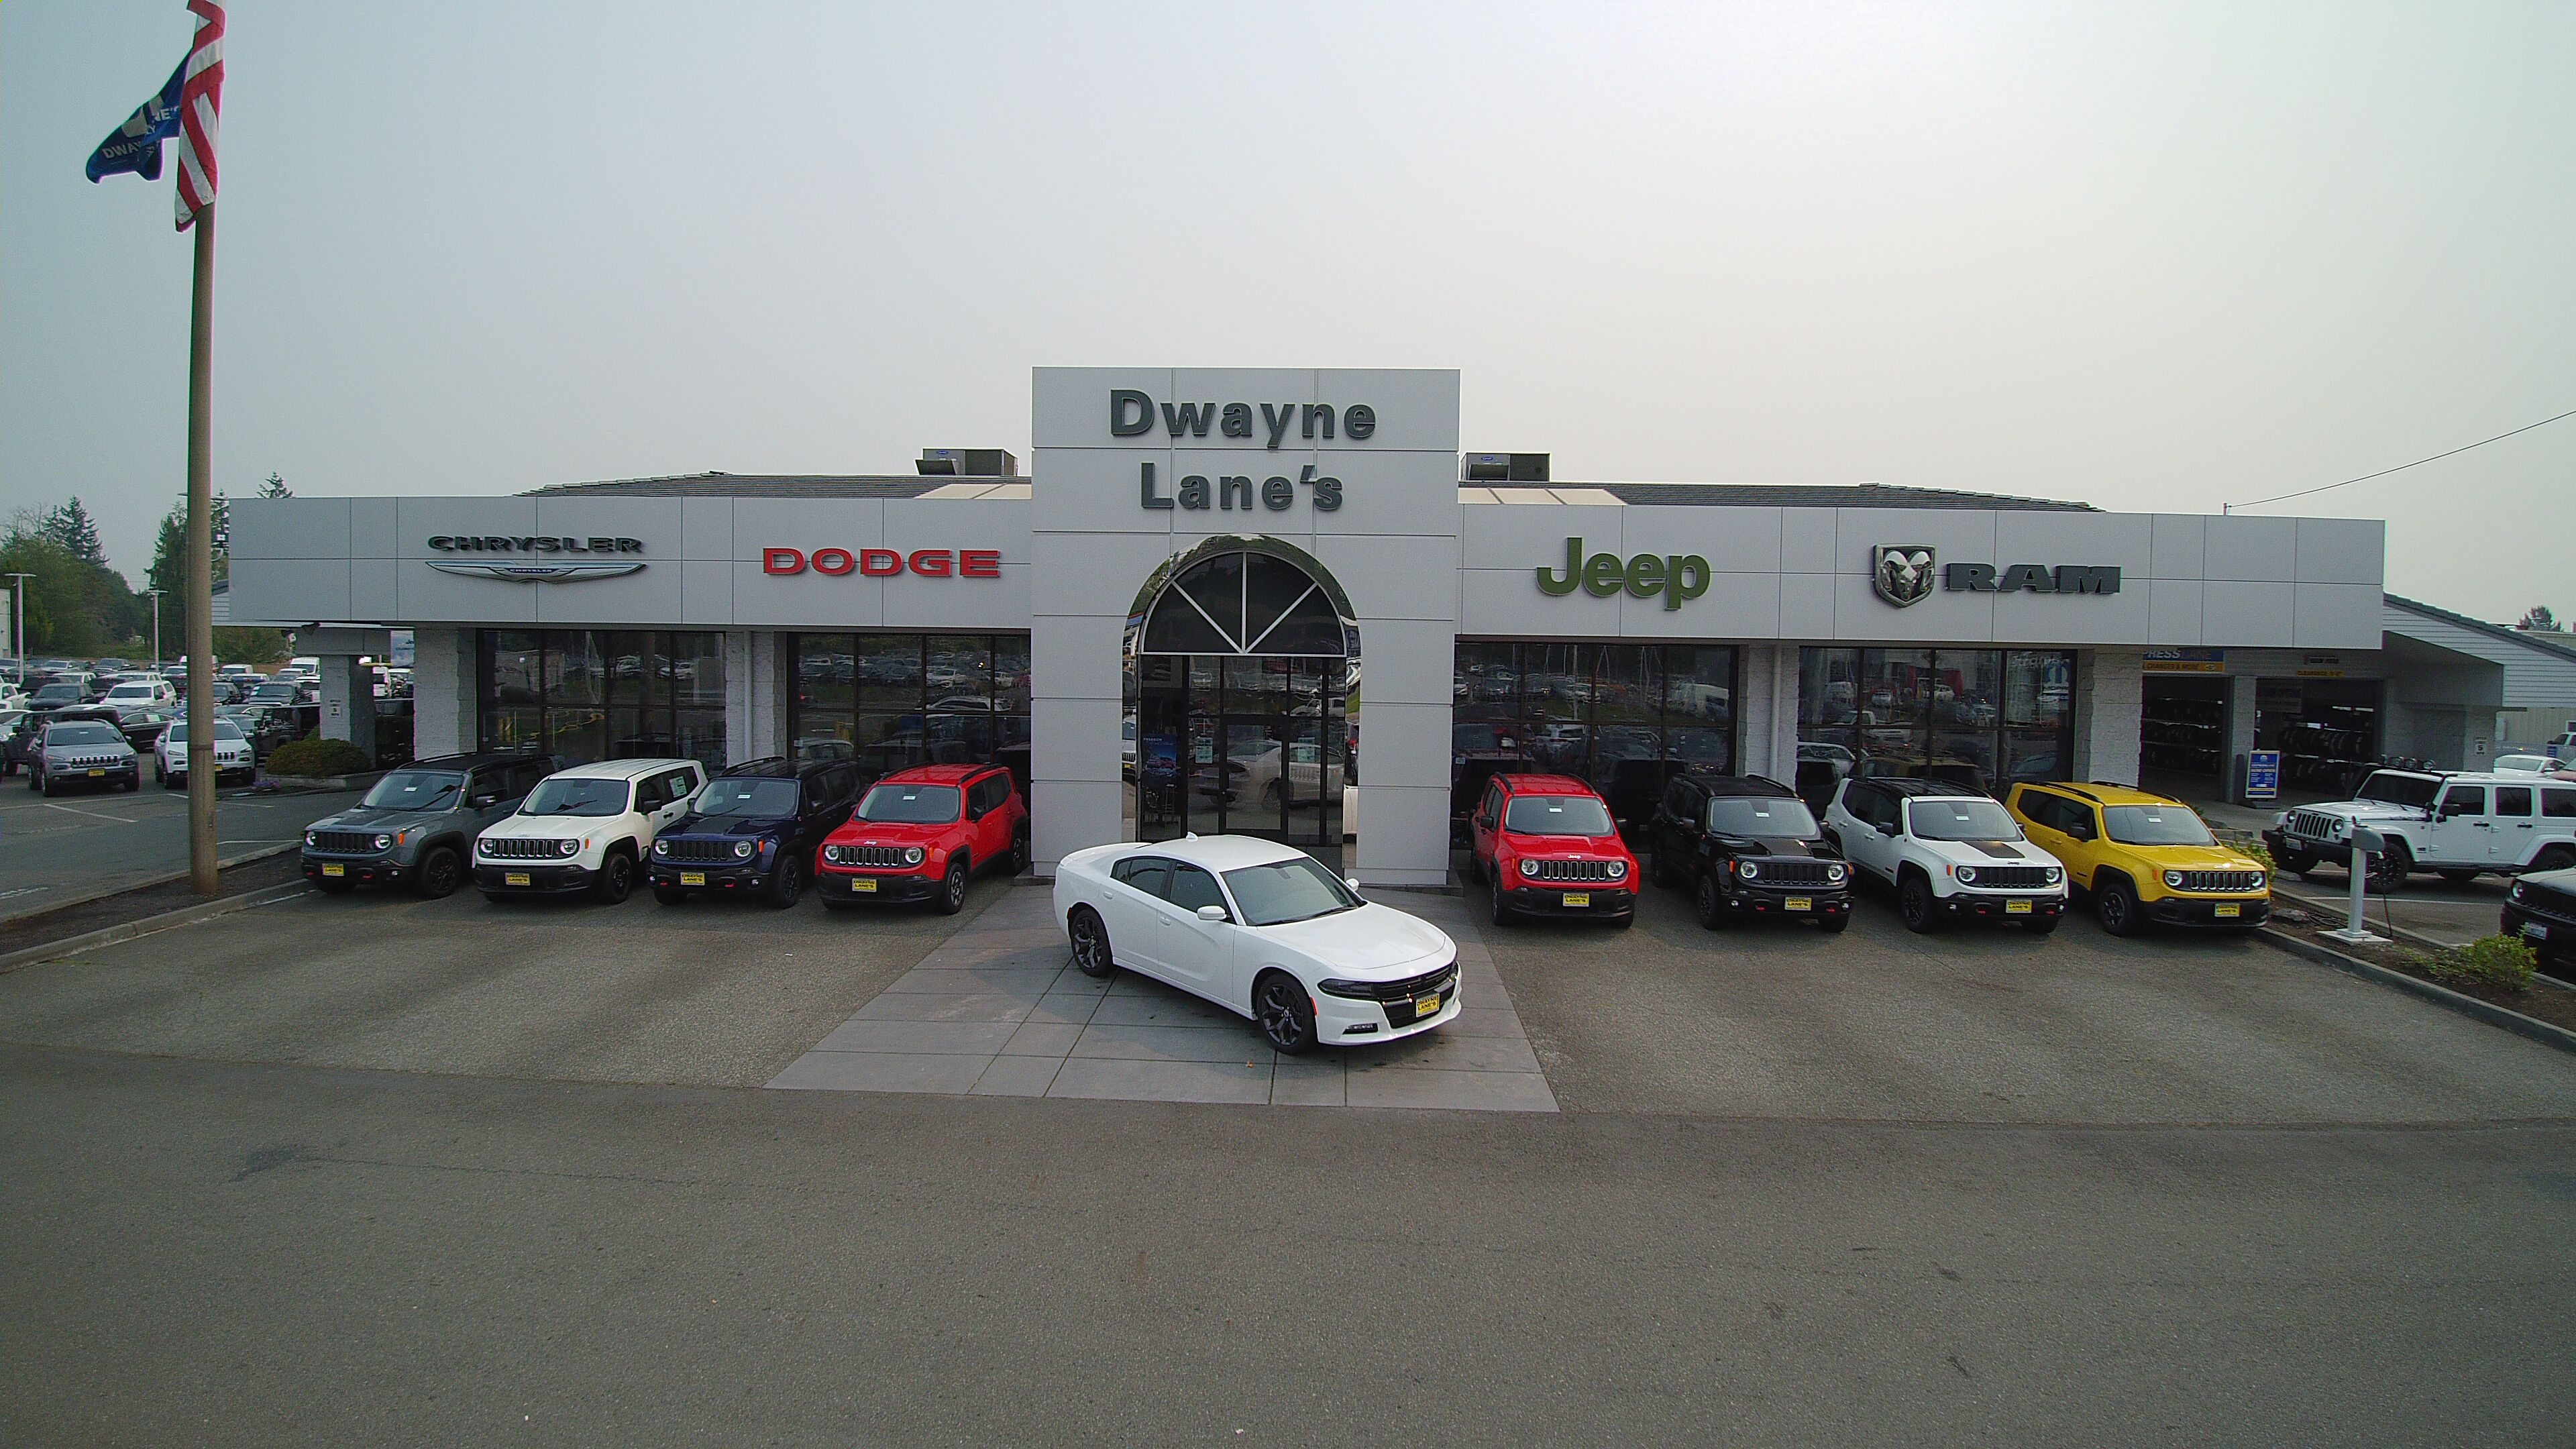 Chrysler Jeep Dodge Ram Dealership Dwayne Lanes CJDR - Chrysler jeep dodge dealer